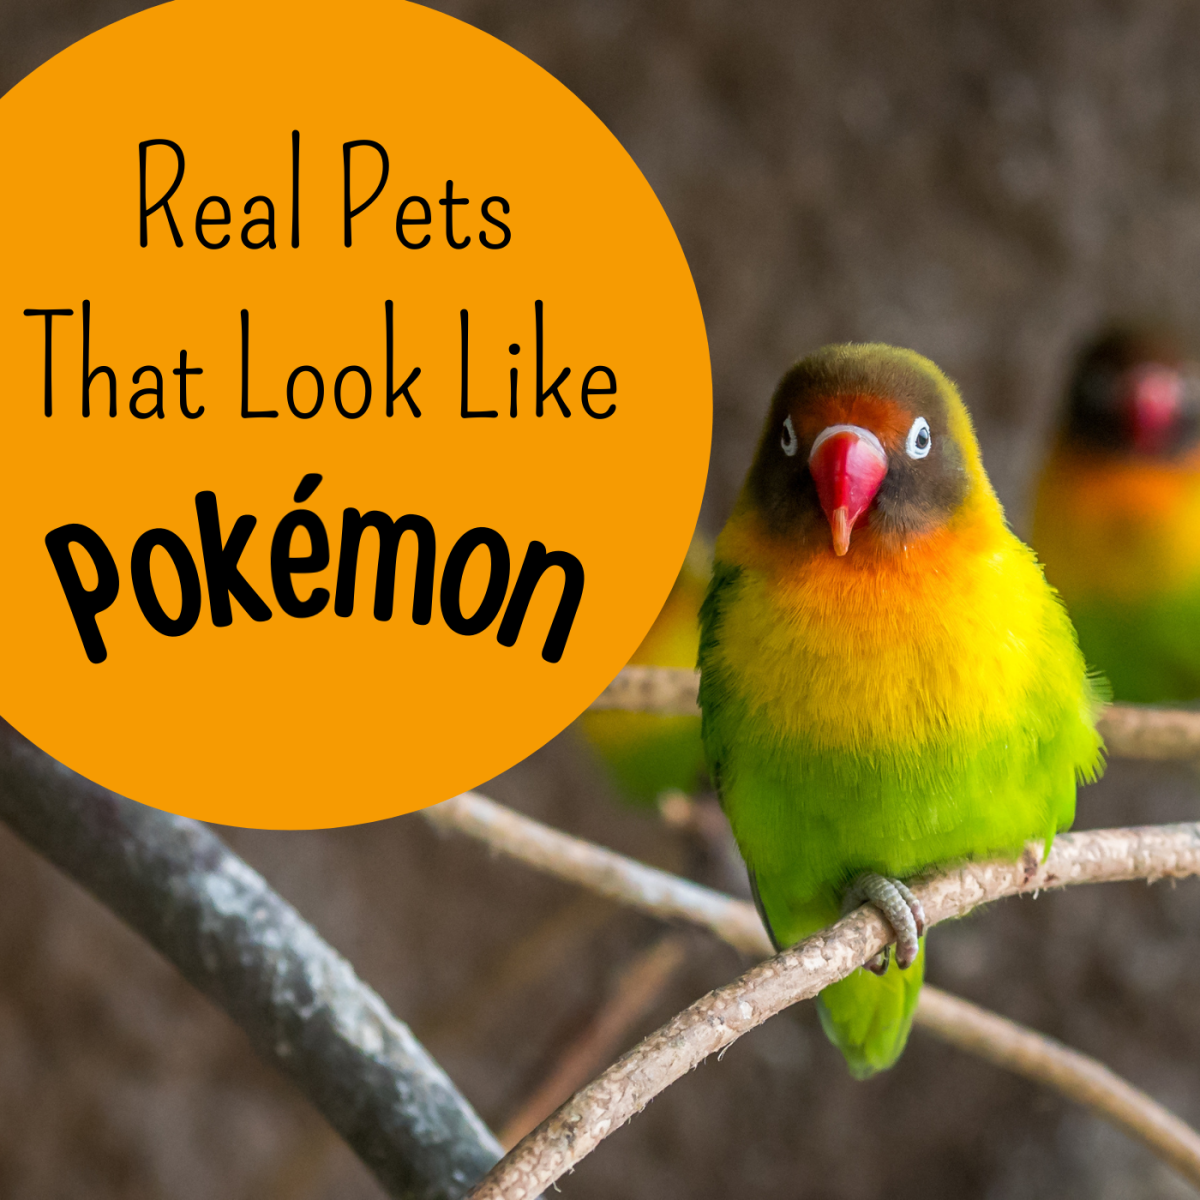 Have you always dreamed of owning a Pokémon? Learn about some real-life exotic pets that resemble characters from the series.